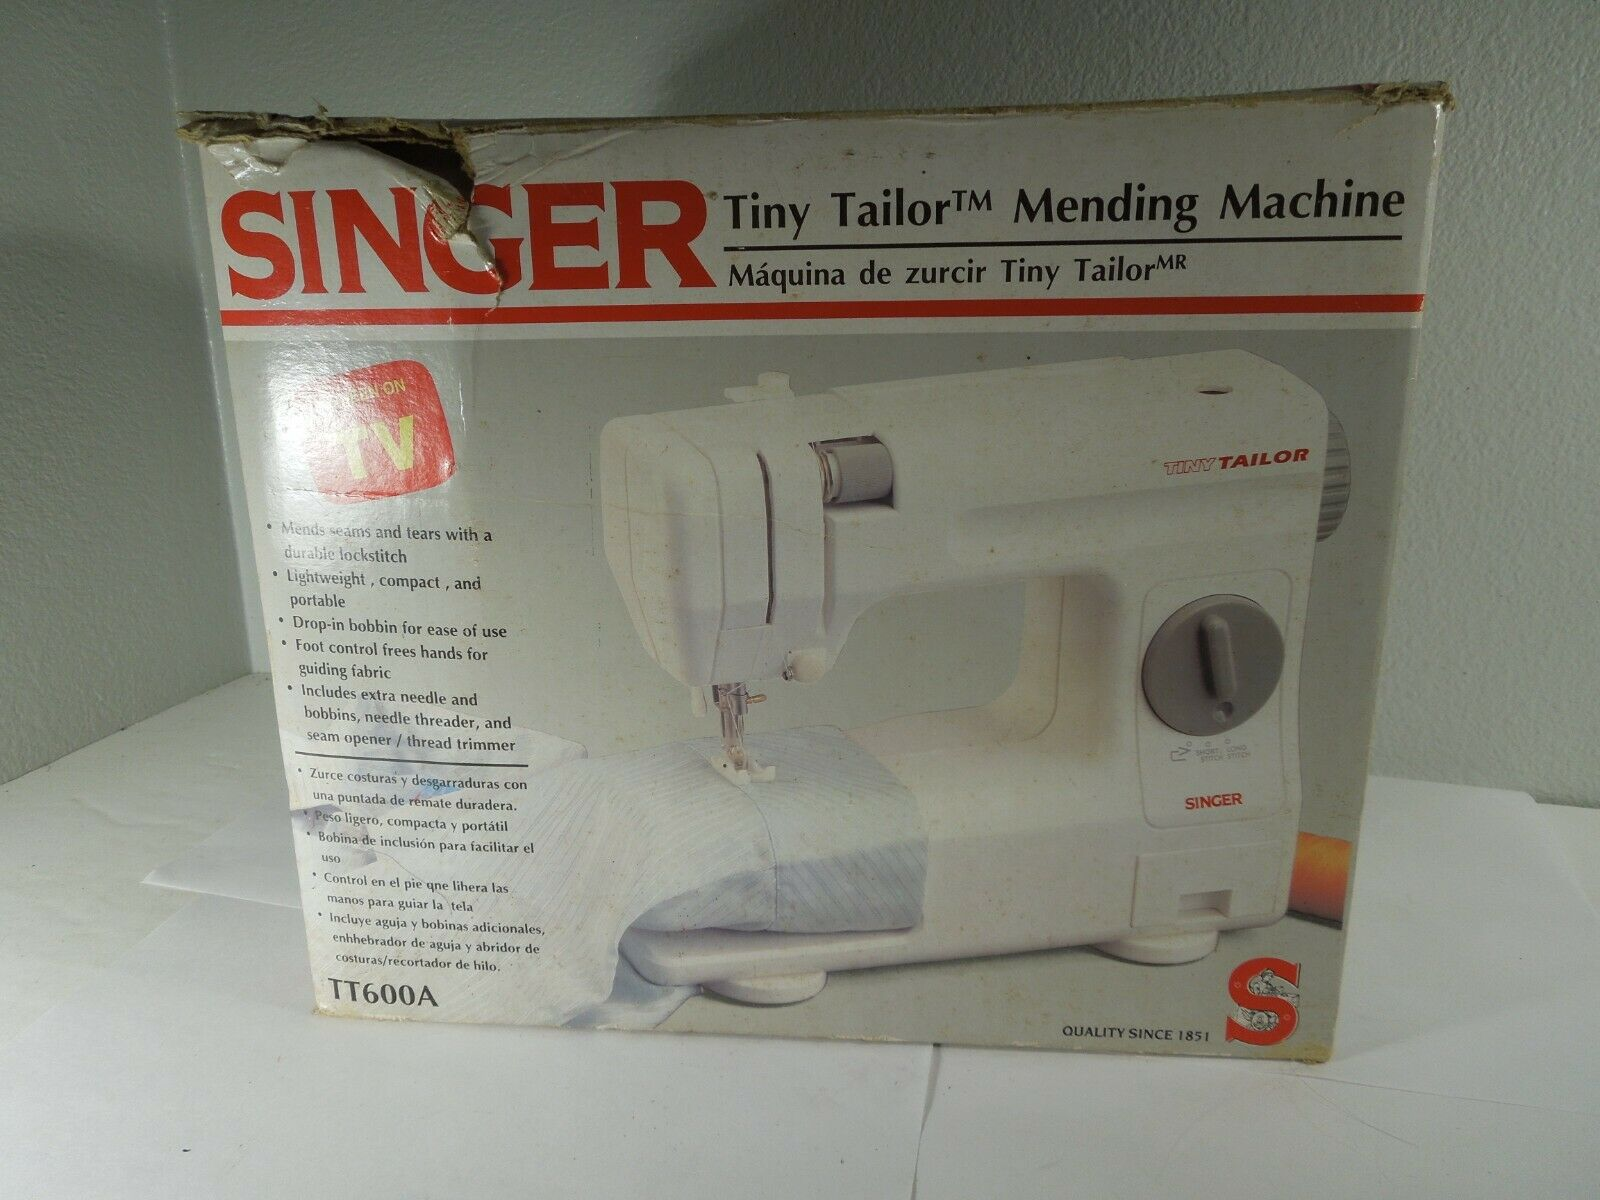 s l1600 - SINGER Tiny Tailor Mending Sewing Machine TT600A